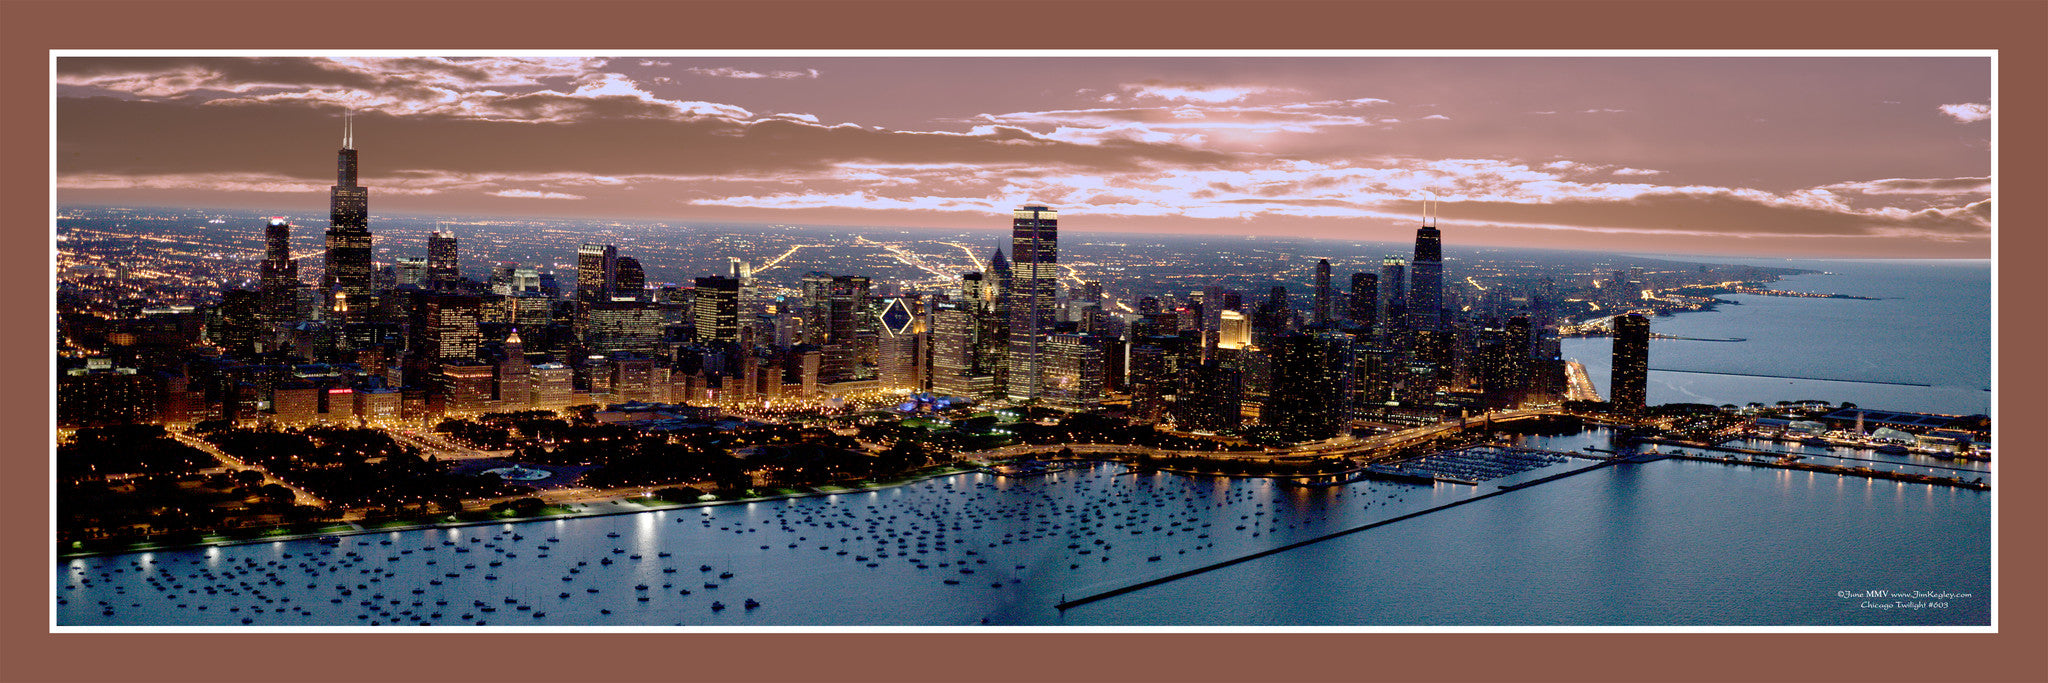 #603 Chicago Twilight